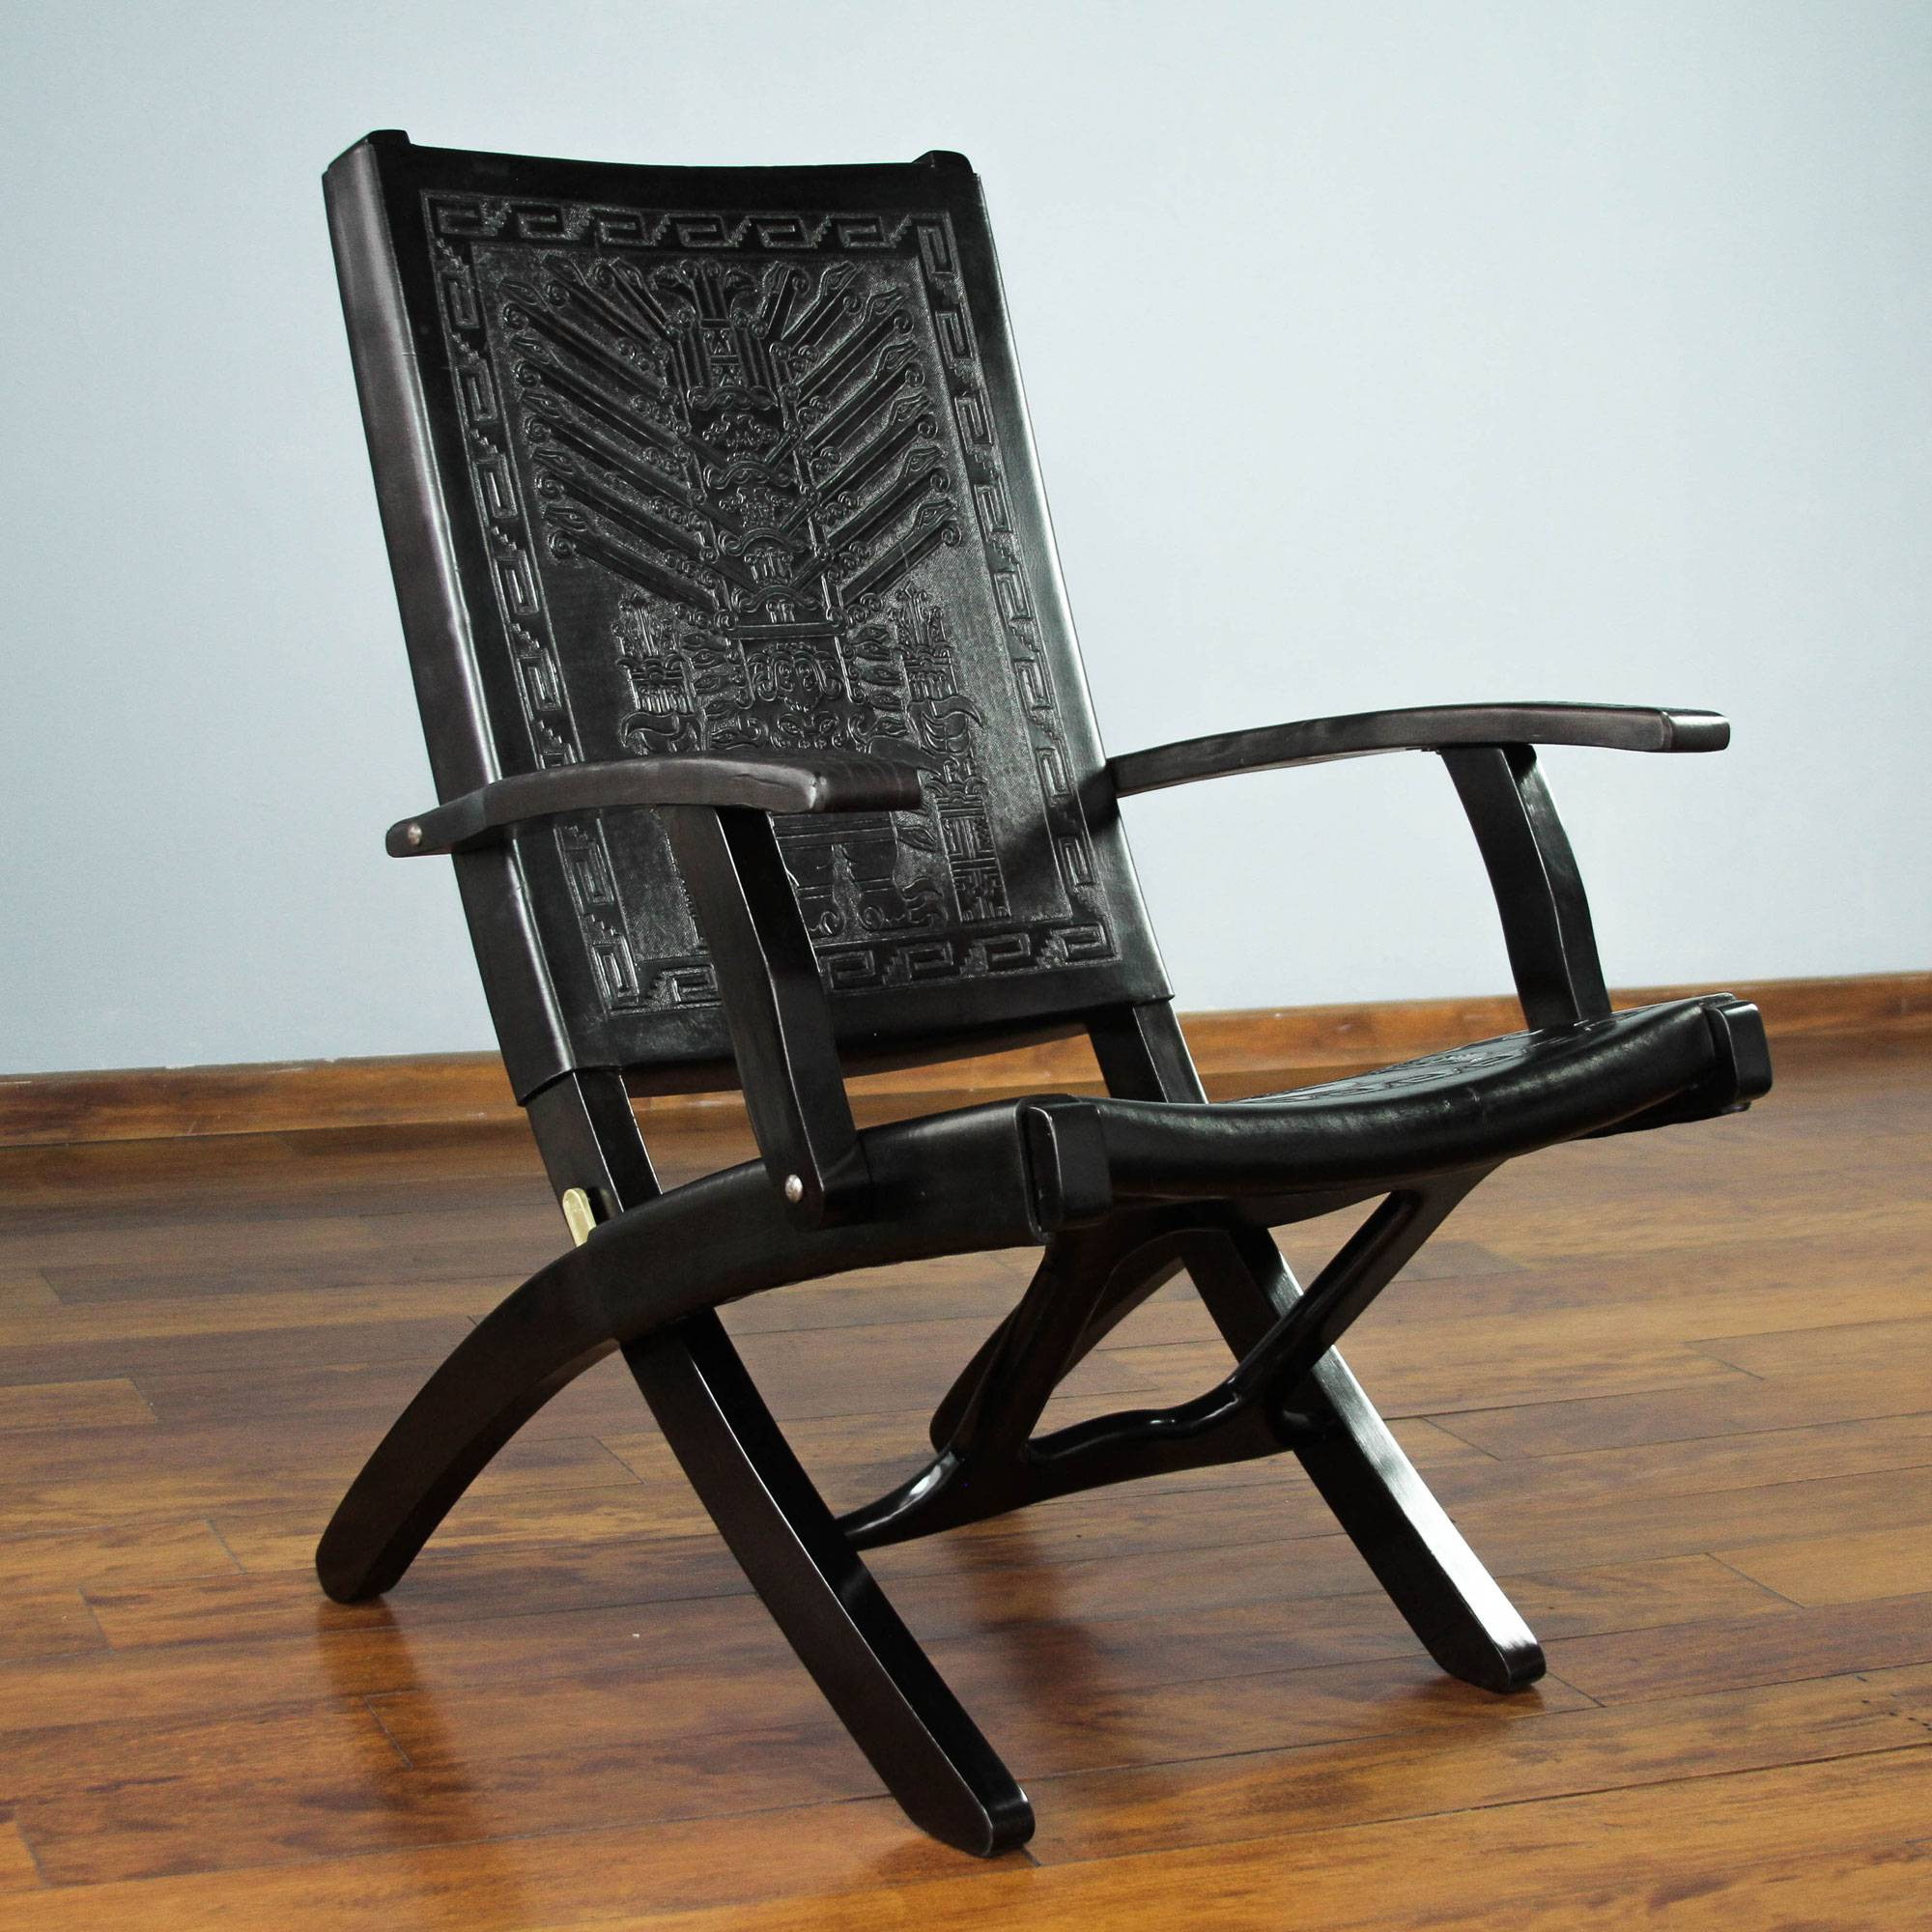 Tornillo wood and leather chair, 'Inca Gods' - Gorgeous for both inside and outside. It's almost too pretty to leave outside, as I'd be tempted to fold it and store it inside.